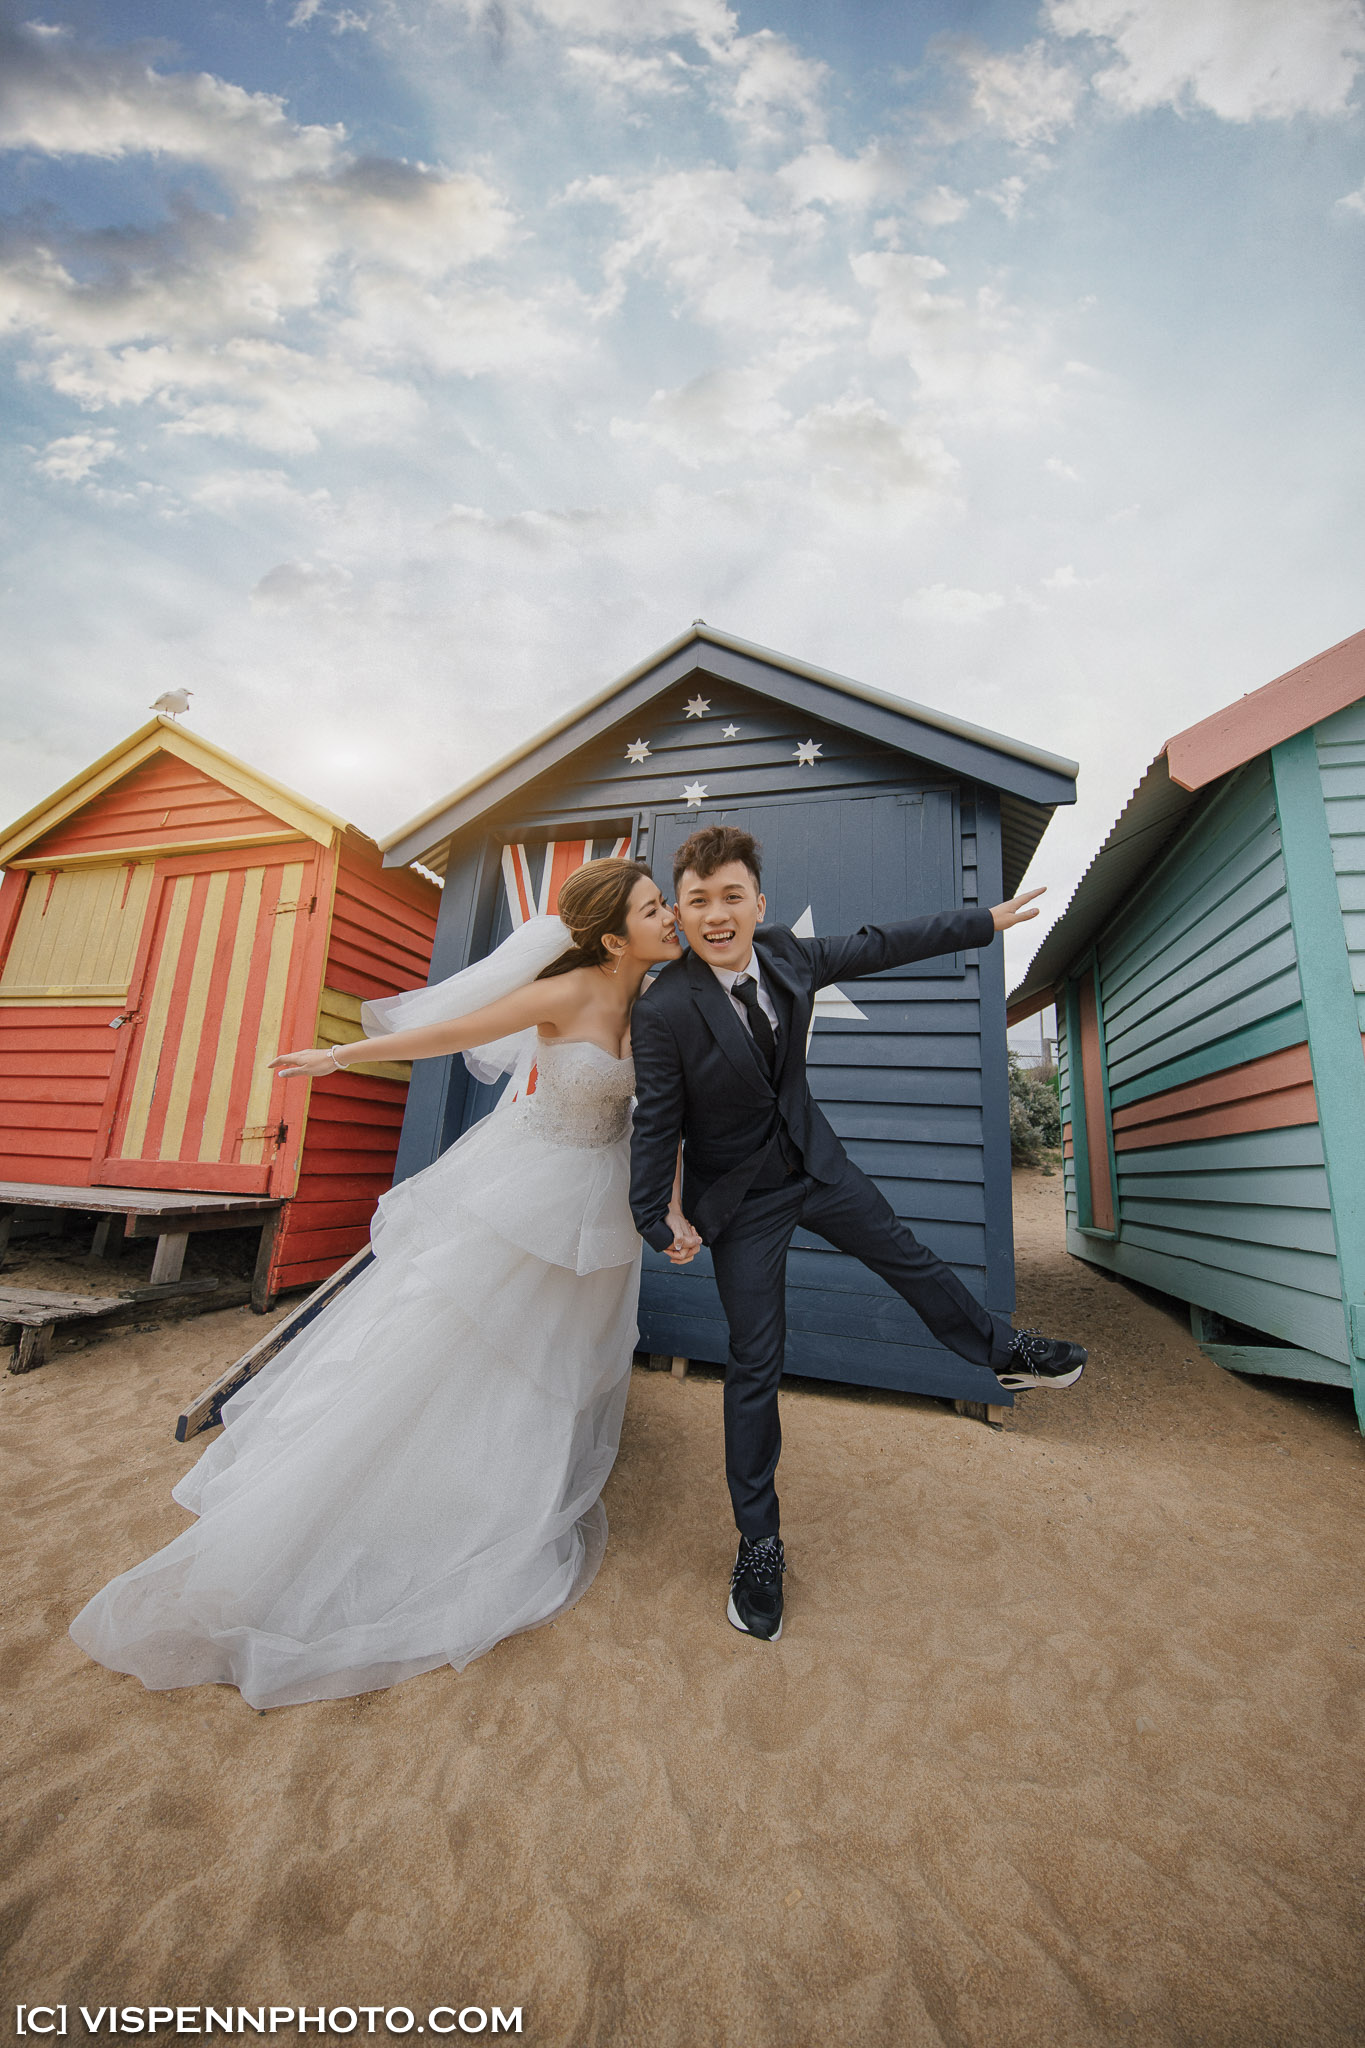 PRE WEDDING Photography Melbourne GiGi 6737 EOSR ZHPENN